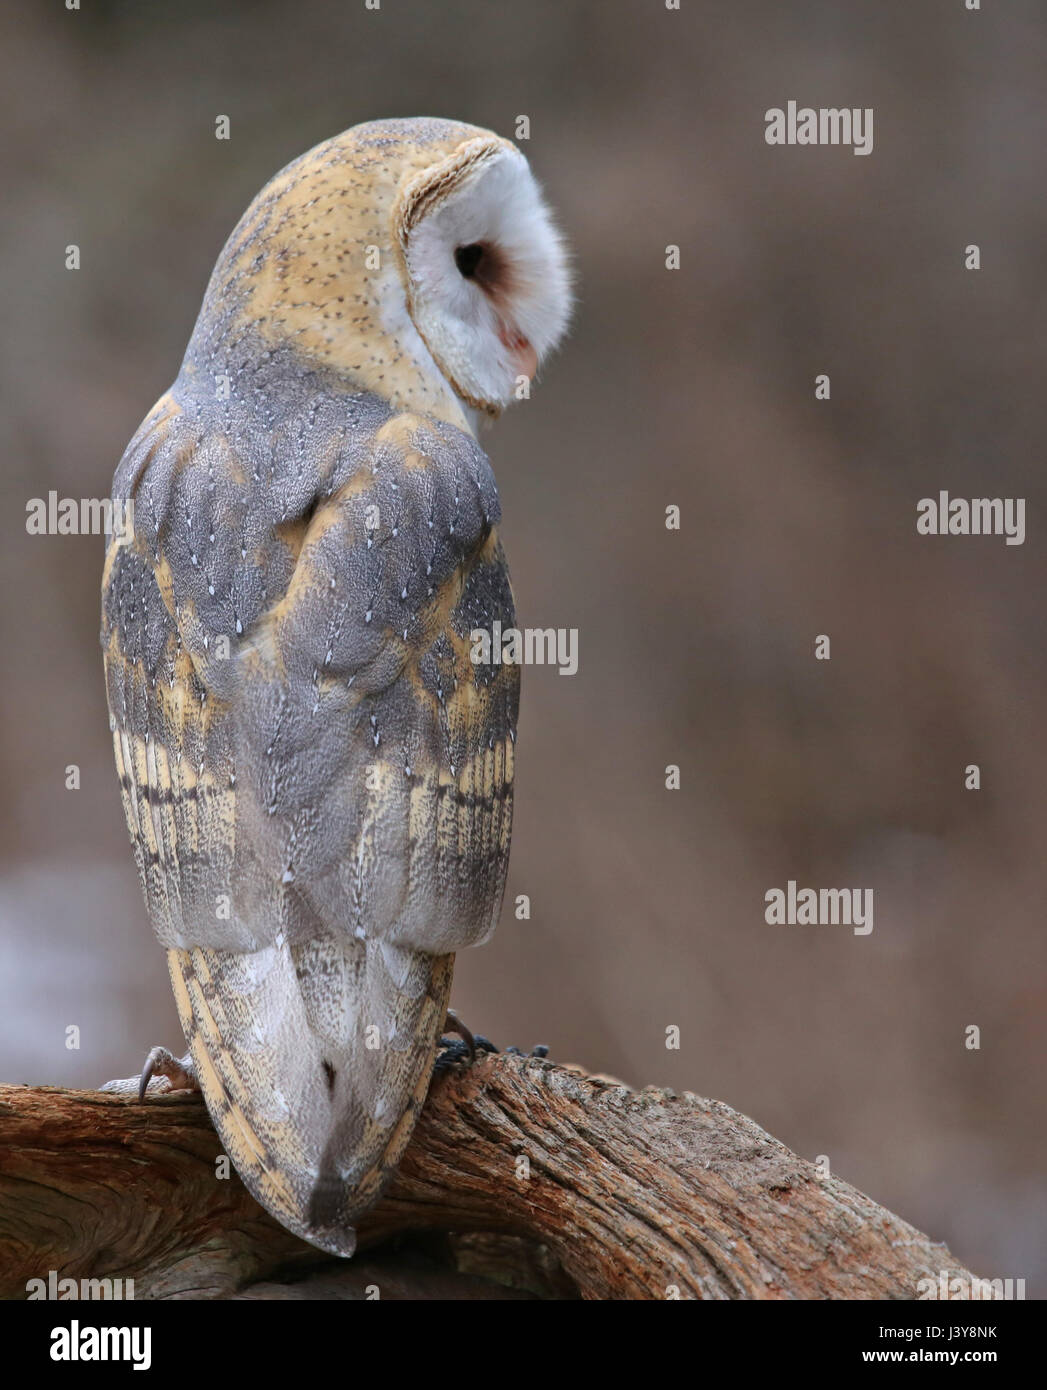 A close-up of the back of a Barn Owl (Tyto alba). - Stock Image